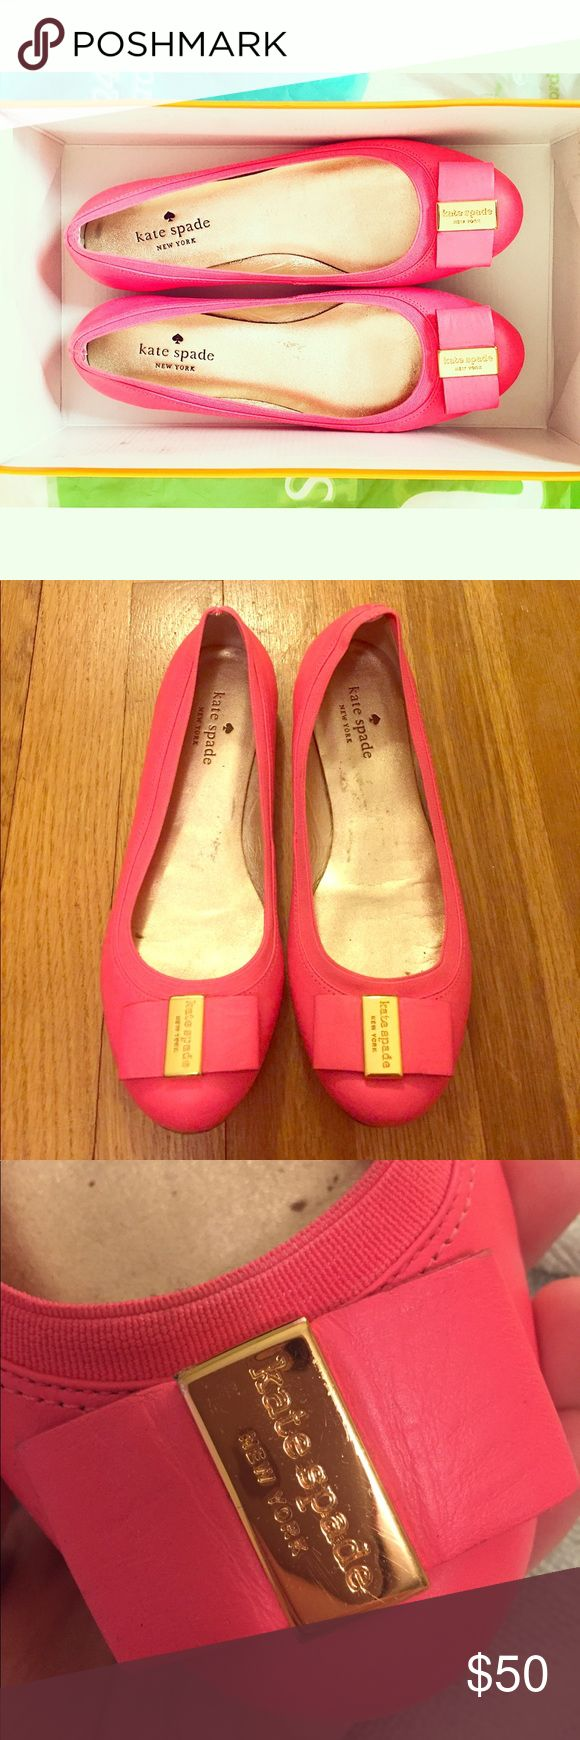 Kate Spade pink ballet flats 🎀🌺🌸💗 Kate Spade pink ballet flats! Used but in decent condition- just some scuffing on the bottom side of the shoes. Worn maybe 5 times total! Perfect for spring 🌸. kate spade Shoes Flats & Loafers